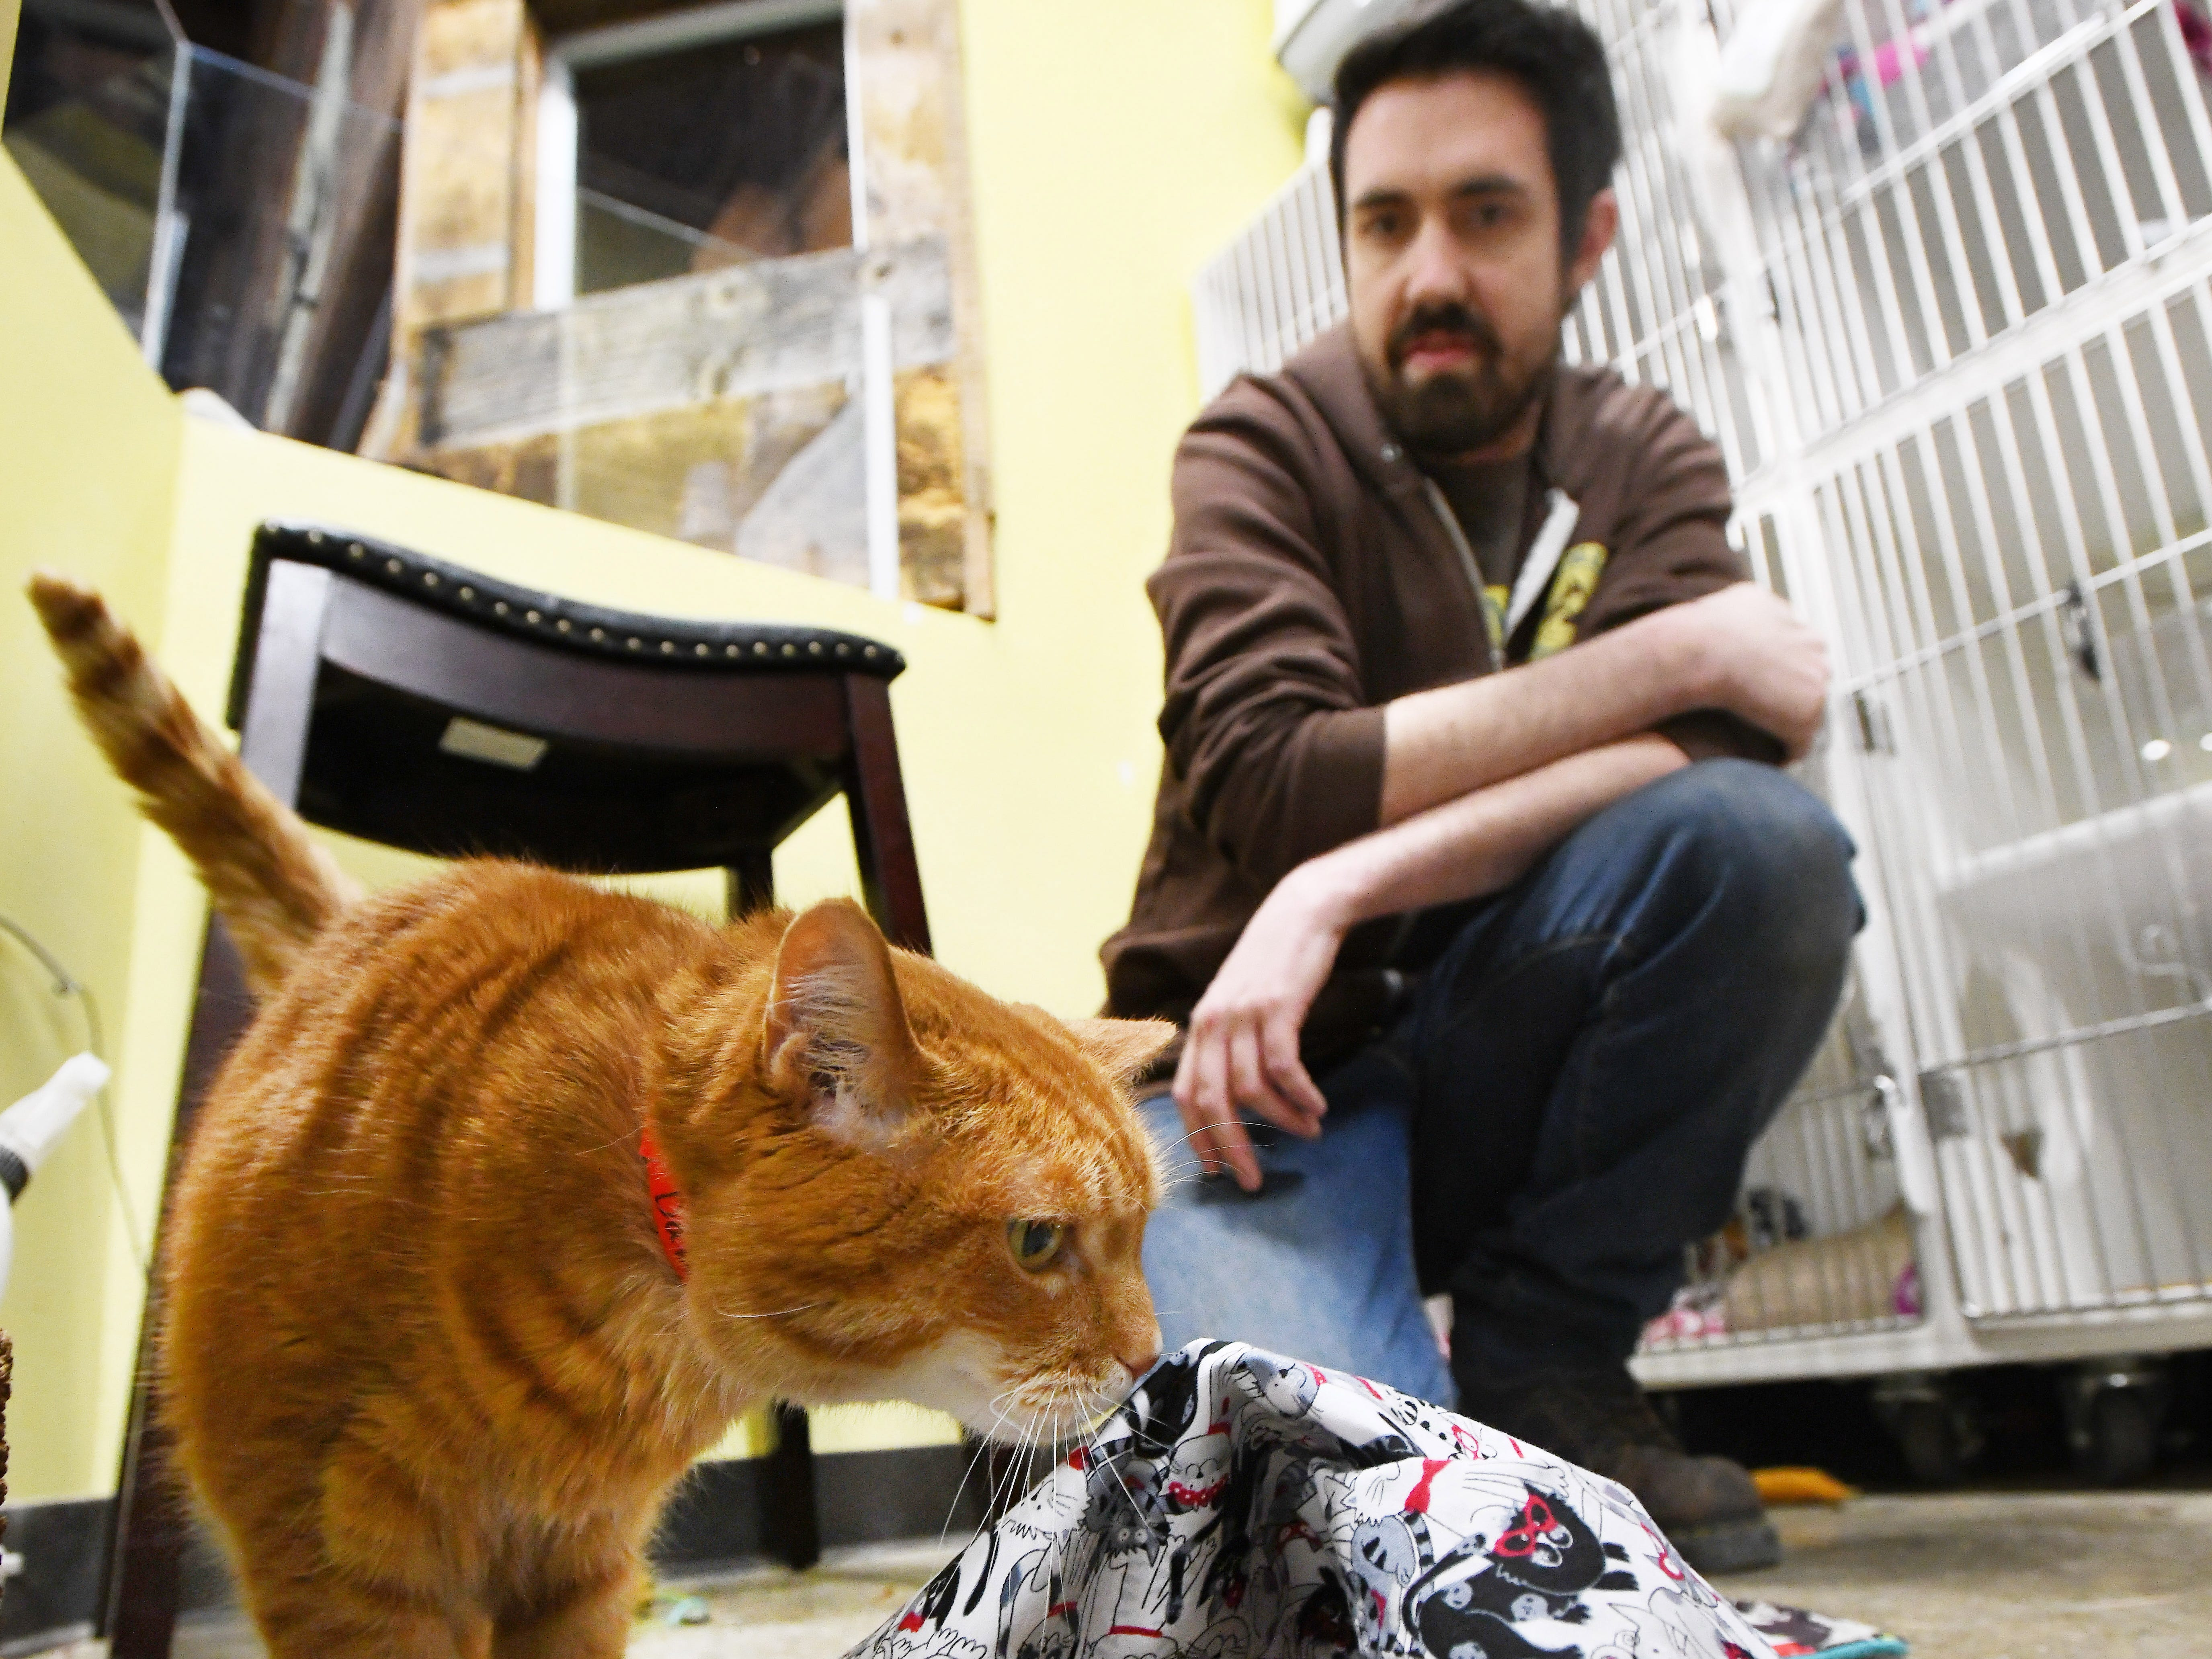 Handmade: Cat blankets have 'sweet smell of success'